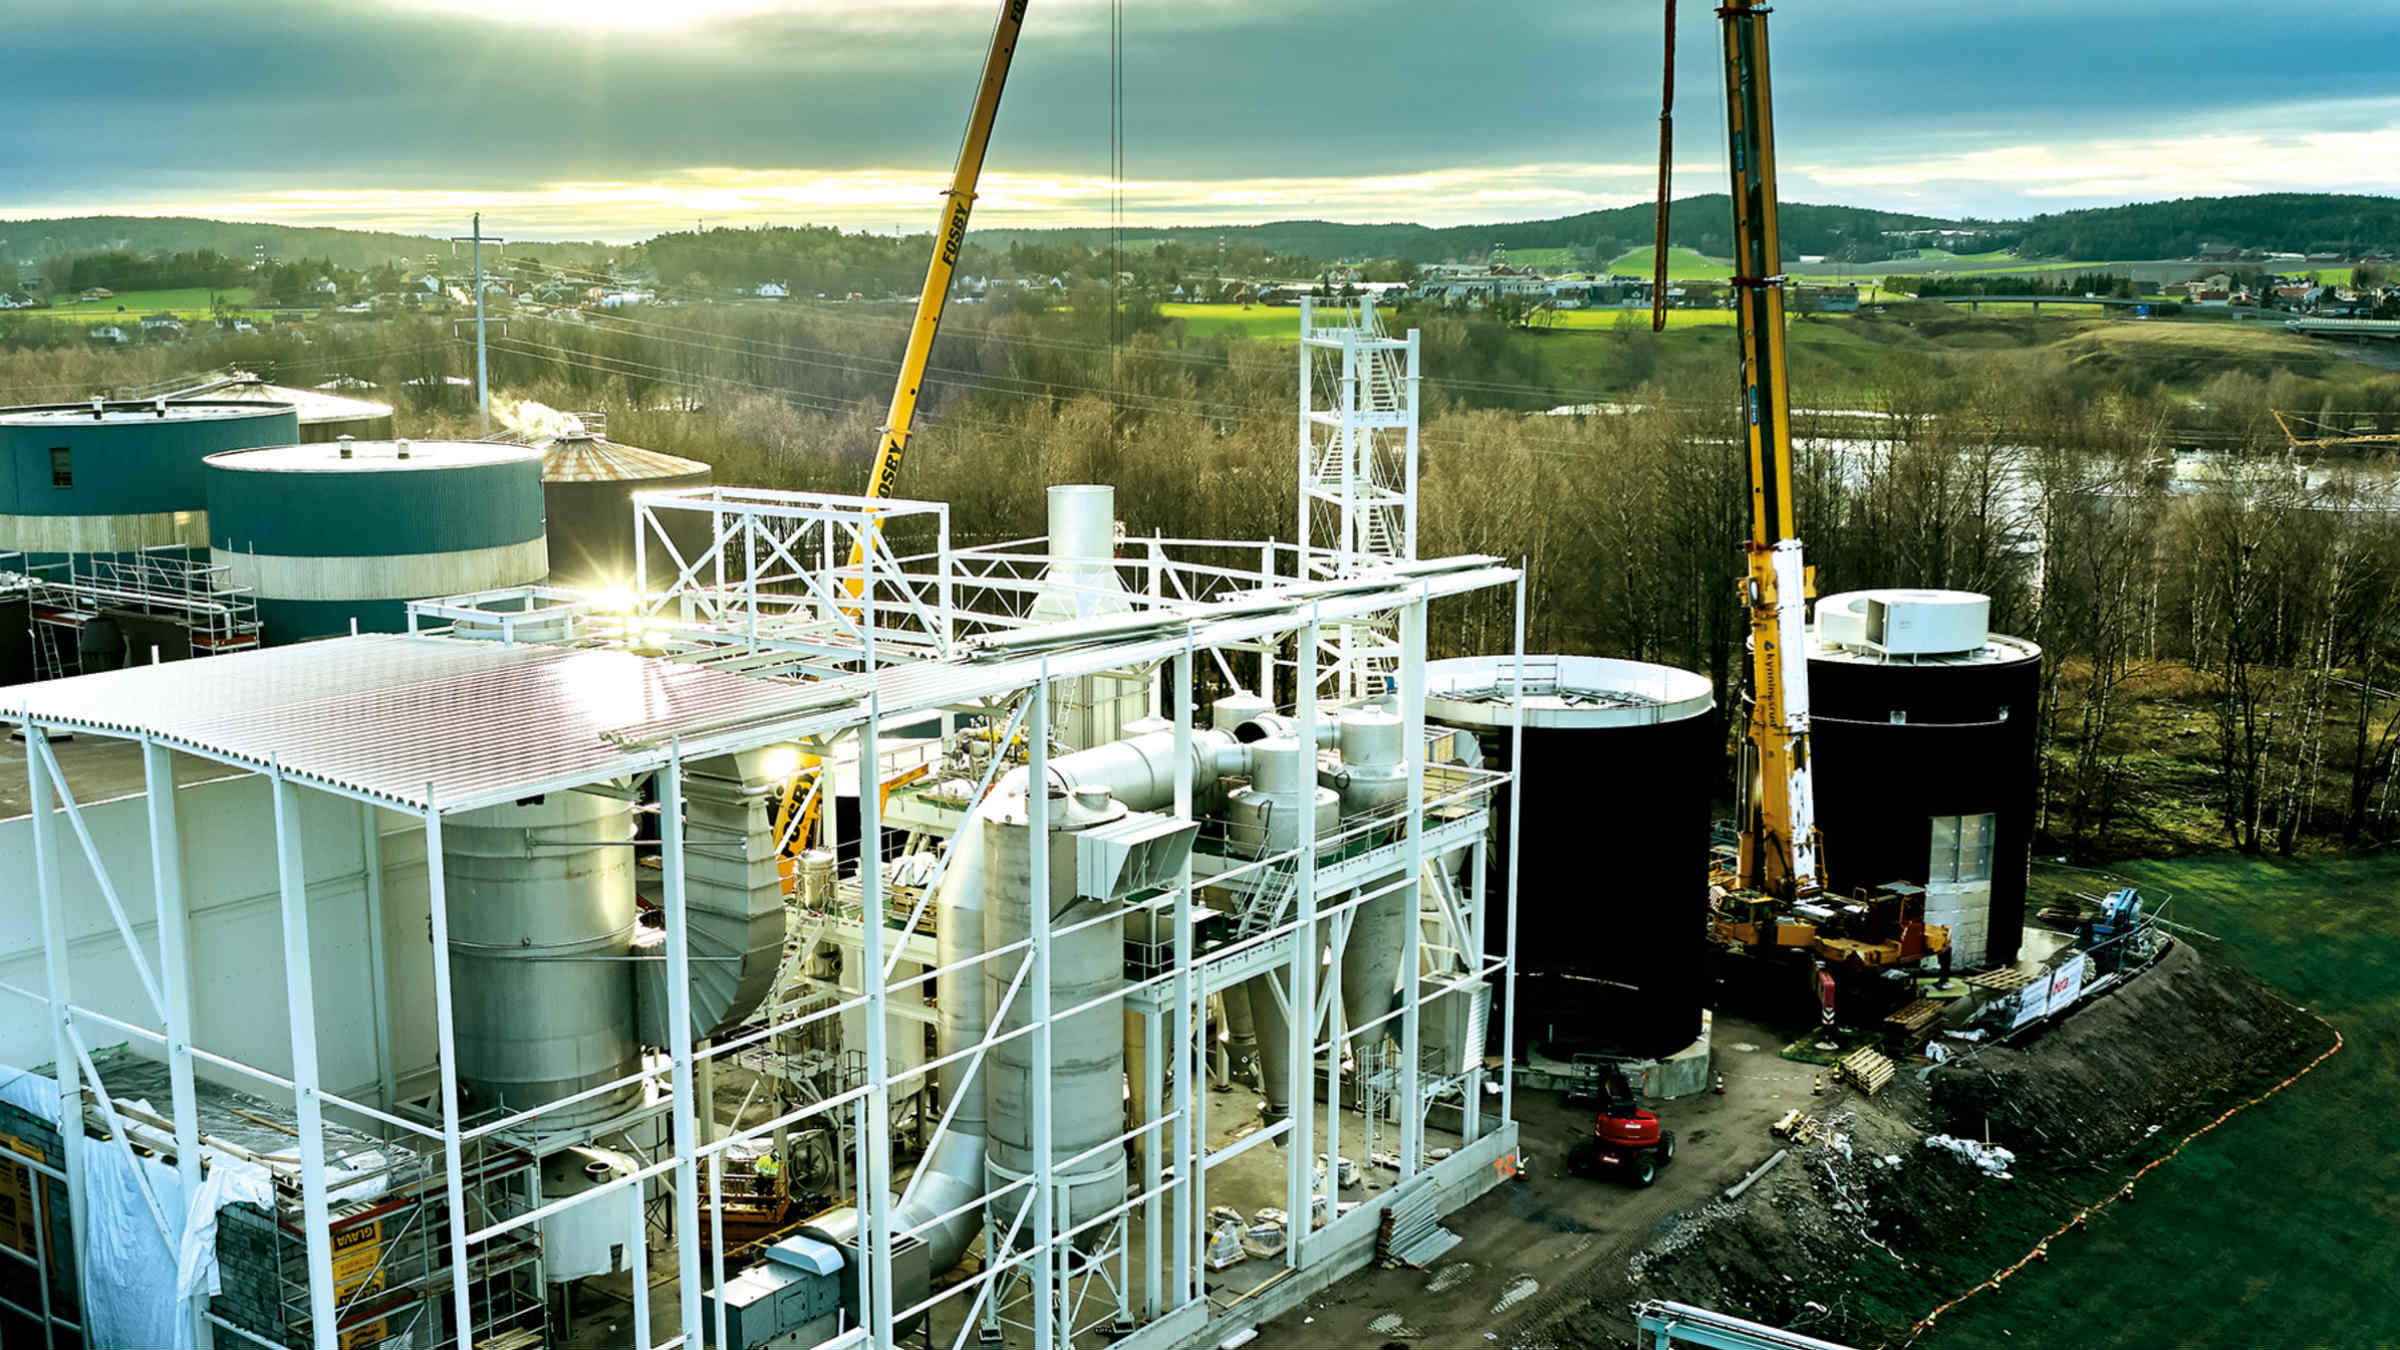 Assembly of Spray drying facility at Borregaard (Photo: GEA)